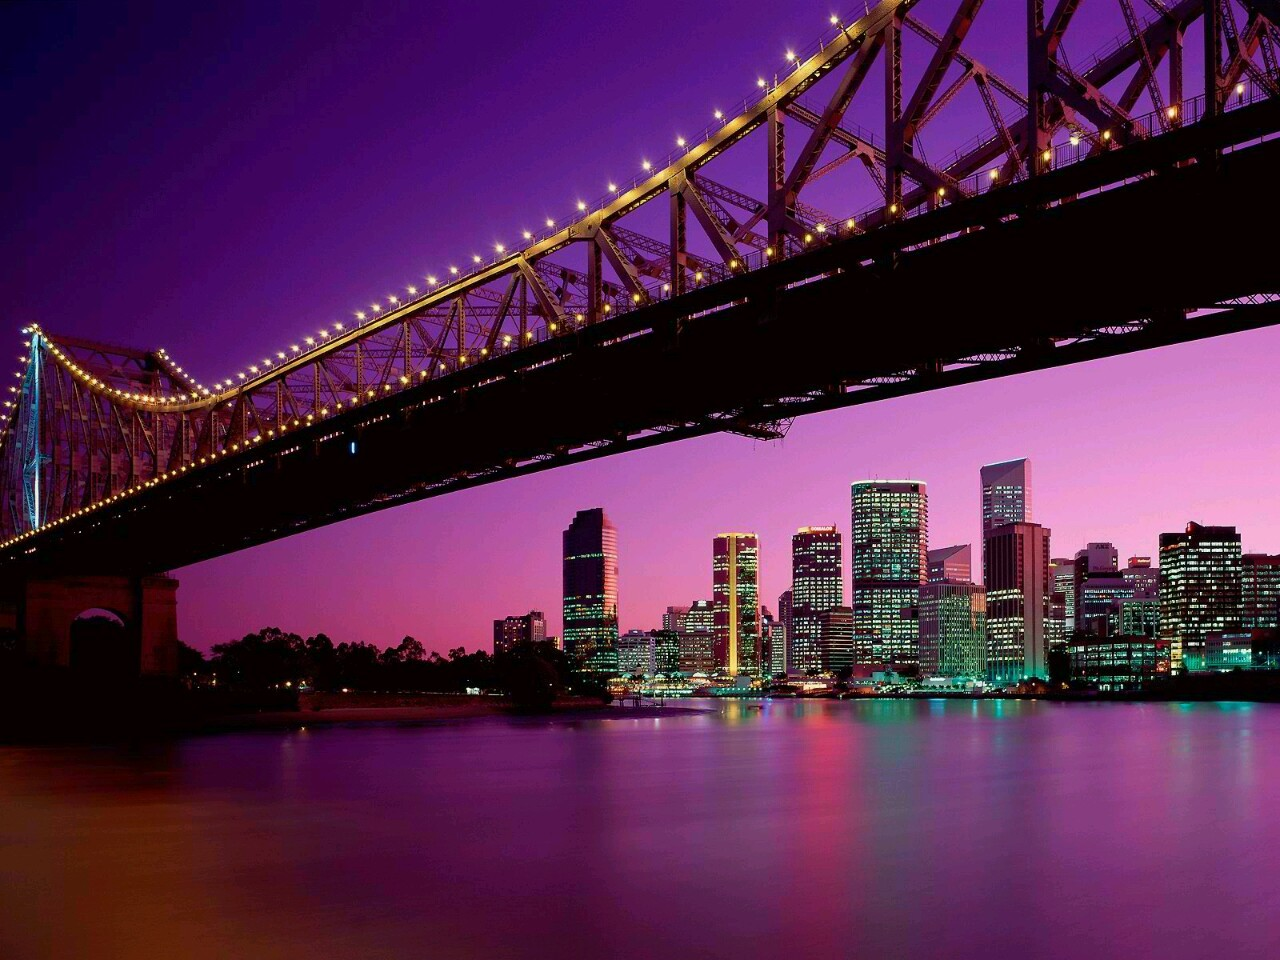 Brisbane on my mind. Brisbane calls!